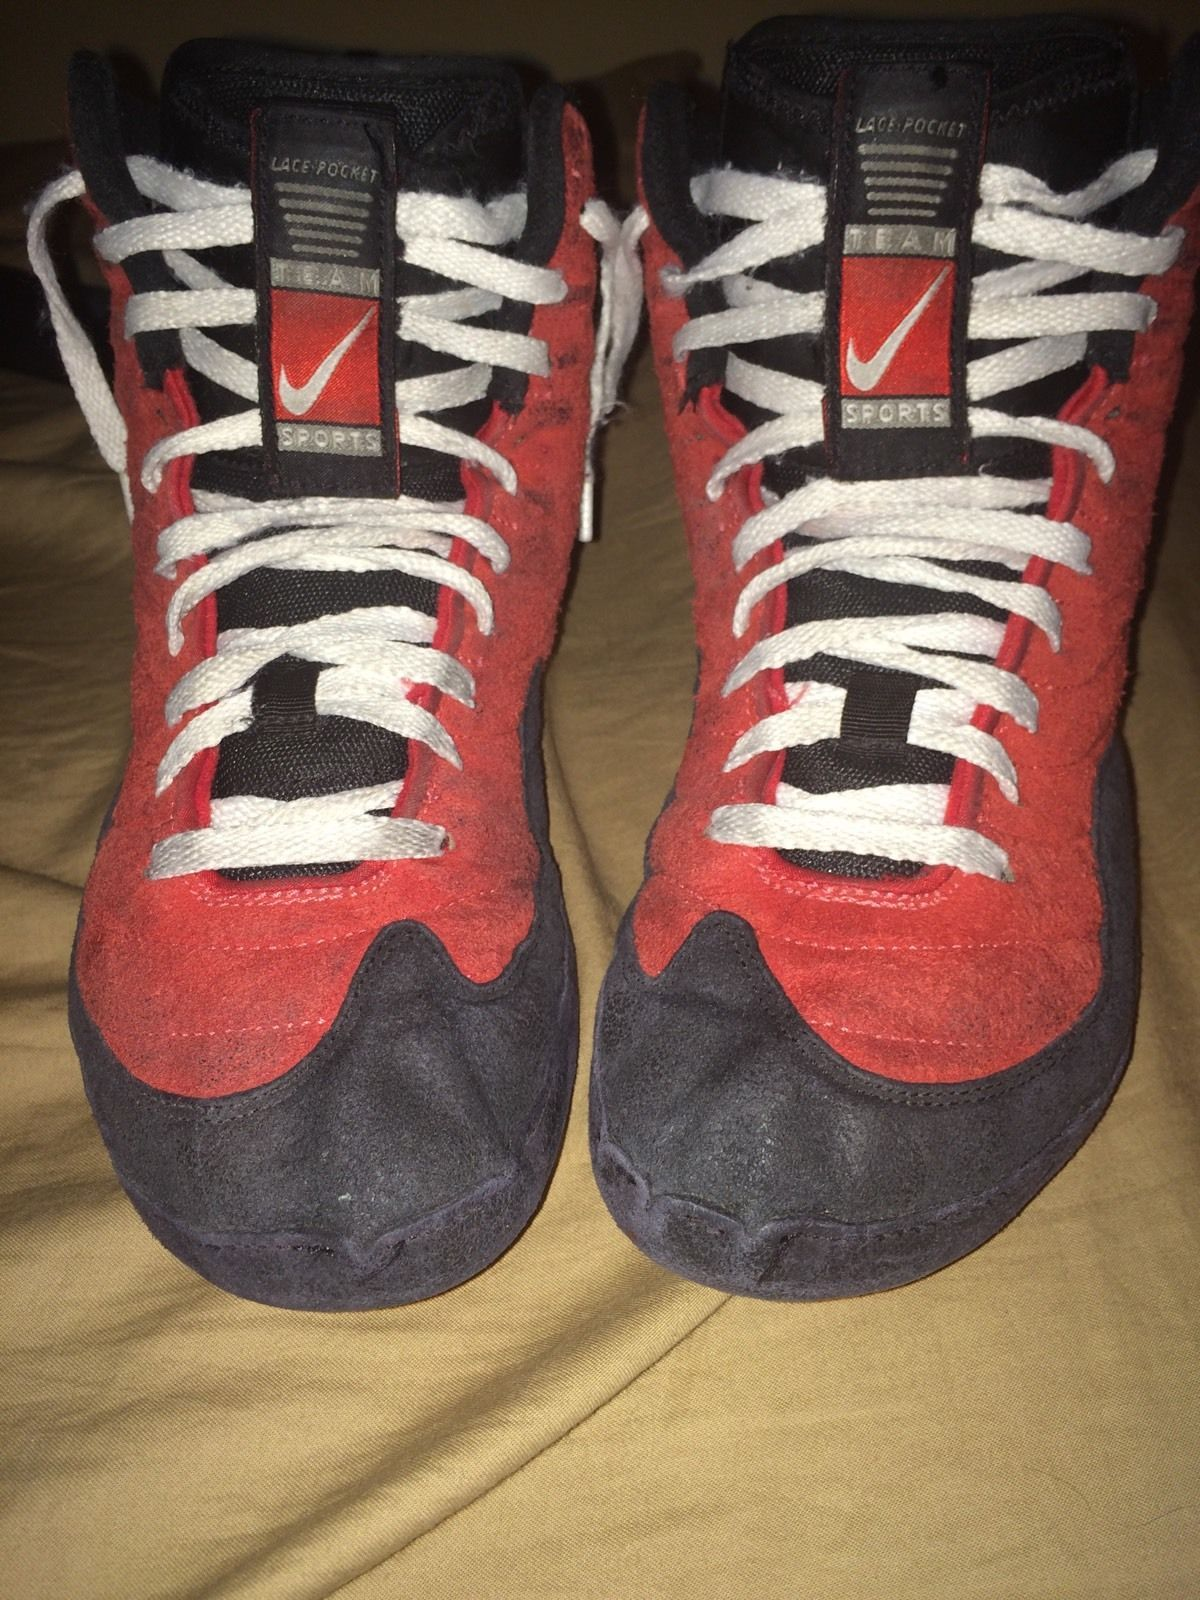 new styles 651d6 50a9e RARE Nike Red Reissue Inflict Wrestling Shoes   eBay